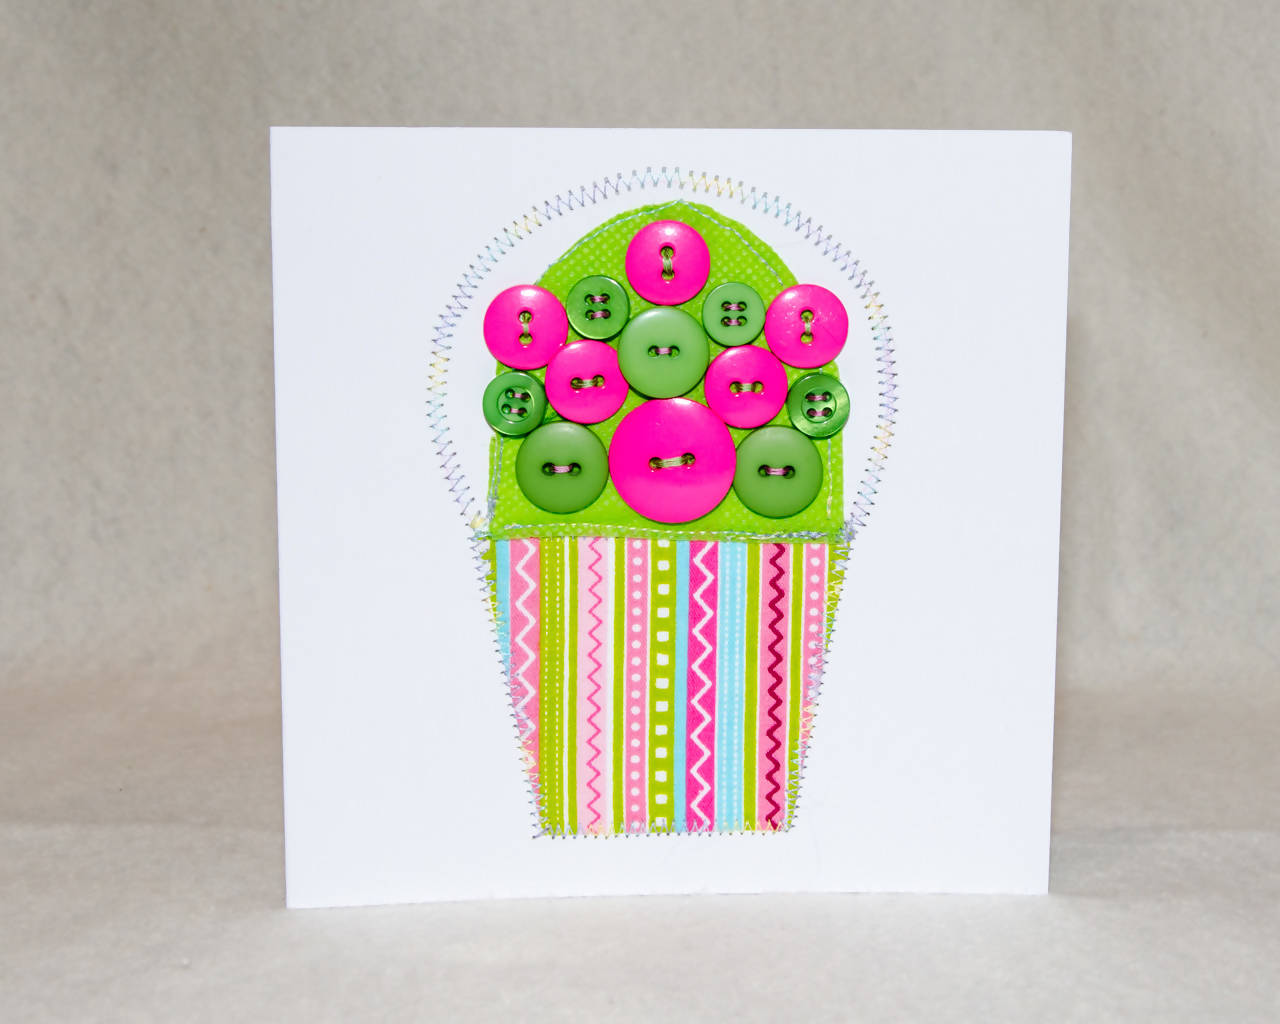 Cupcake Greeting Card - Handmade - Fabric and buttons on paper / Blank Inside